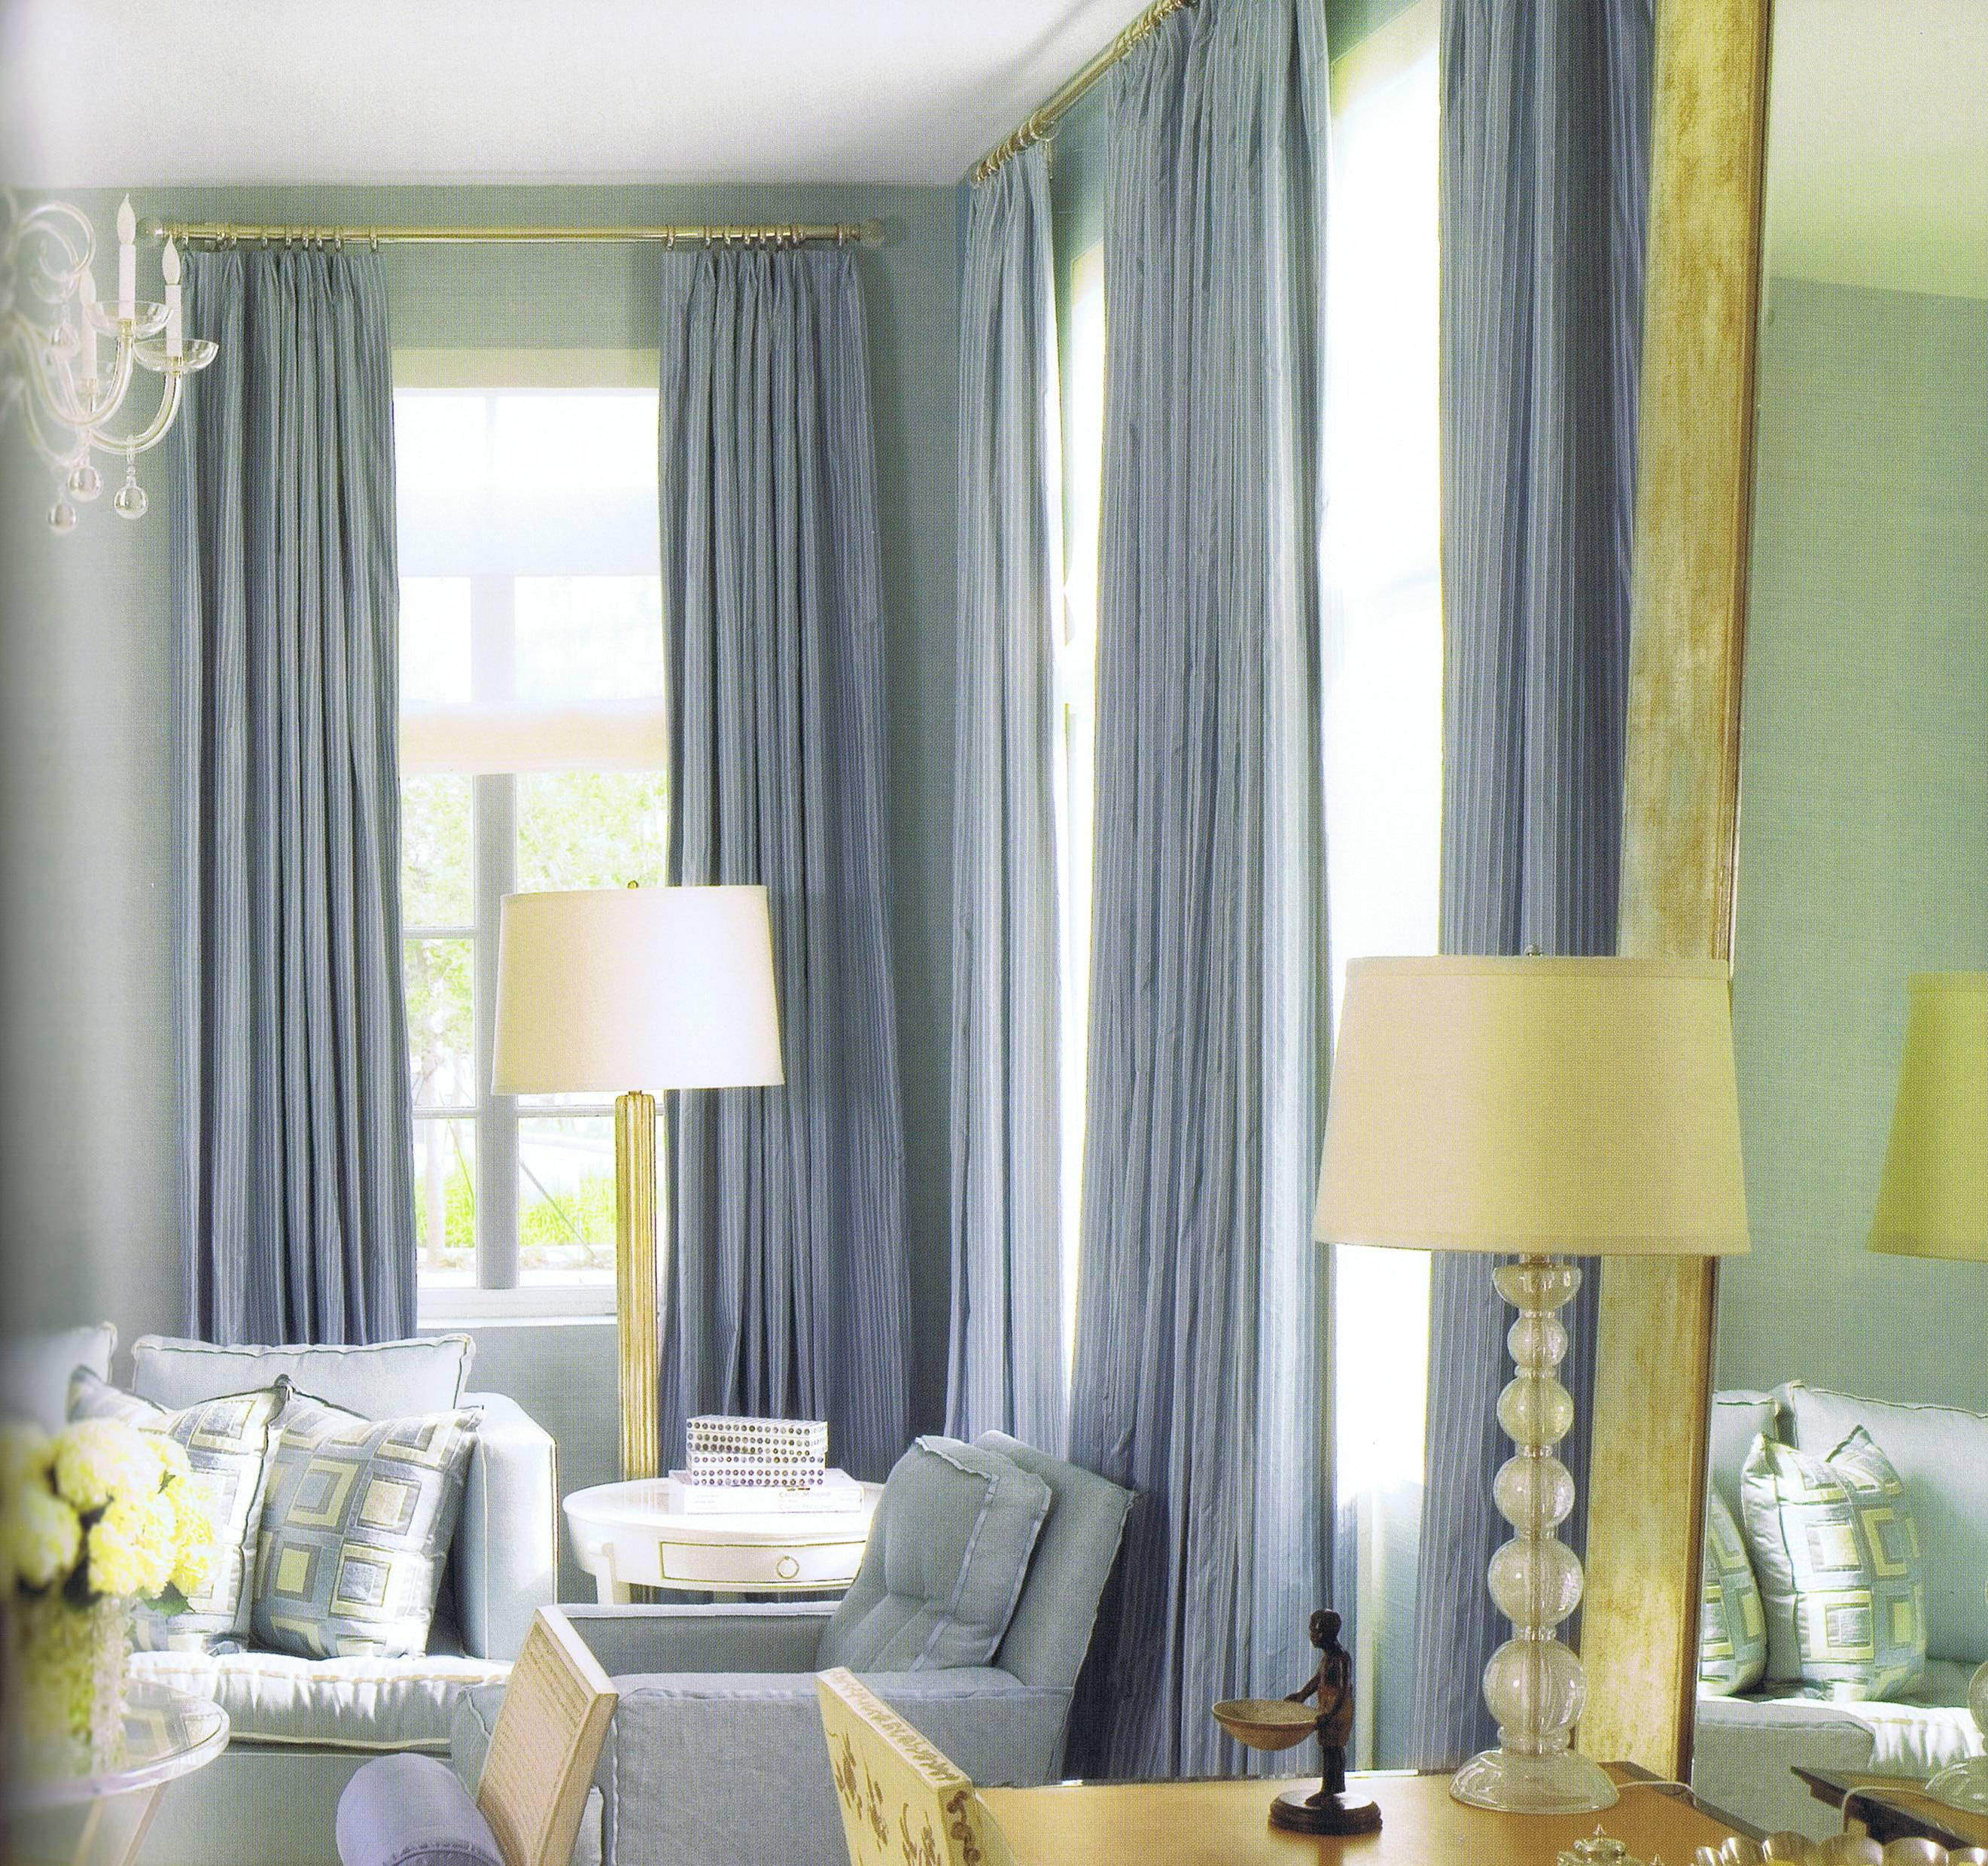 Decorating Color Schemes Made Easy - Inspired Home Decorating